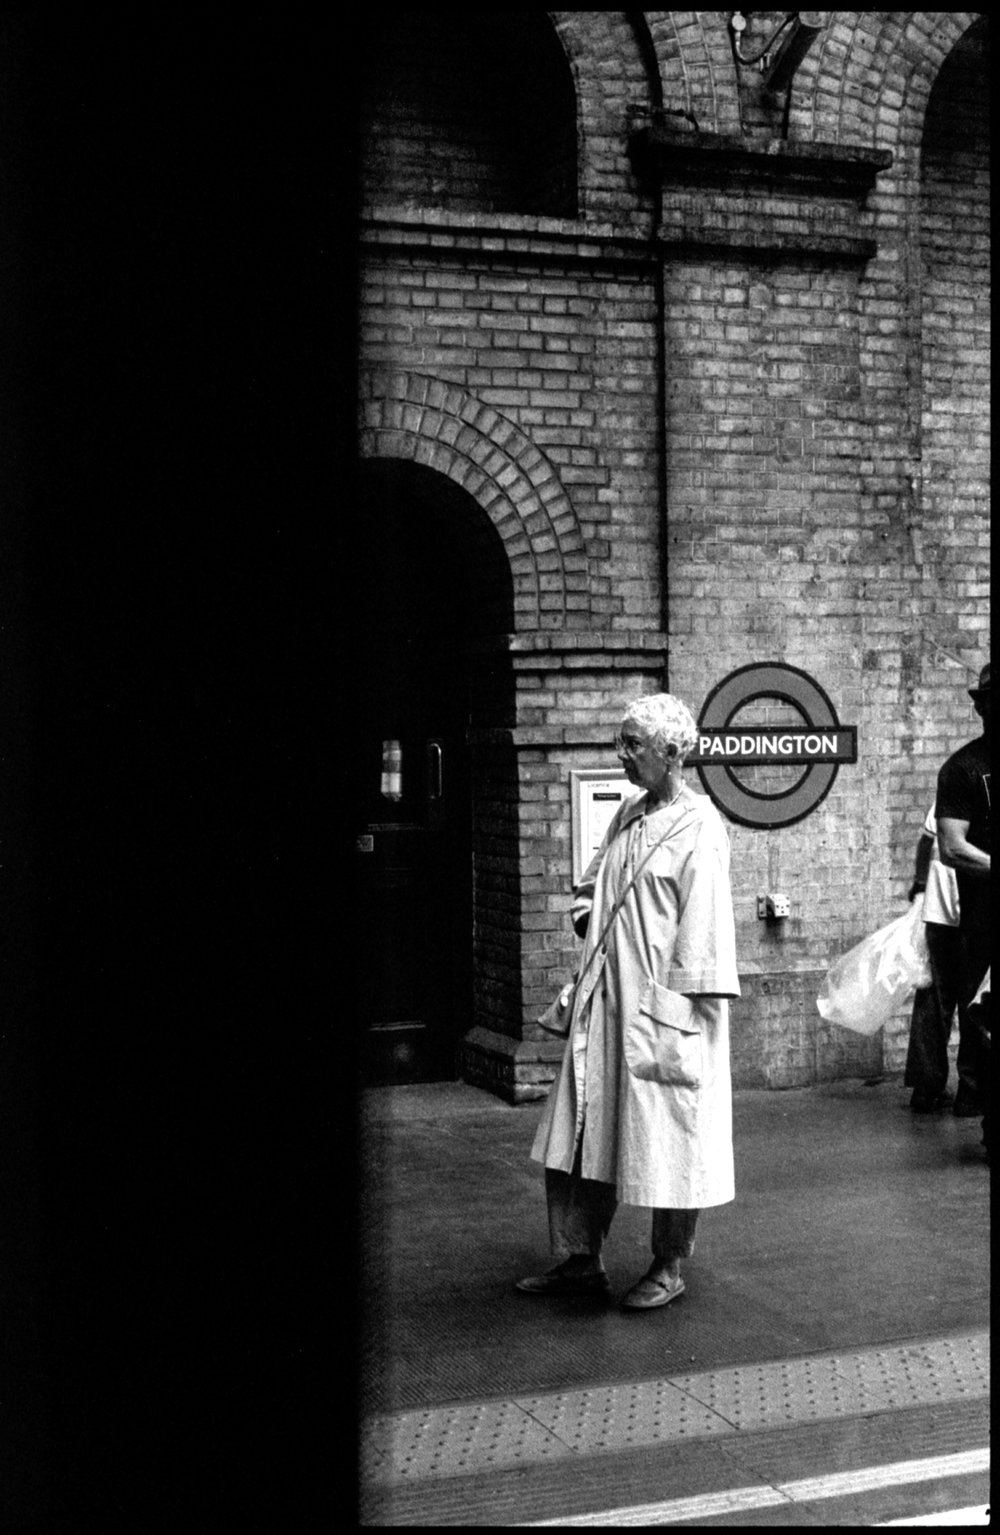 "#0294_19A - Paddington Station. London, England / 2014   Excerpts from the book  ""Fragments""    Signed Copies   On Demand @Blurb   Online Shop"